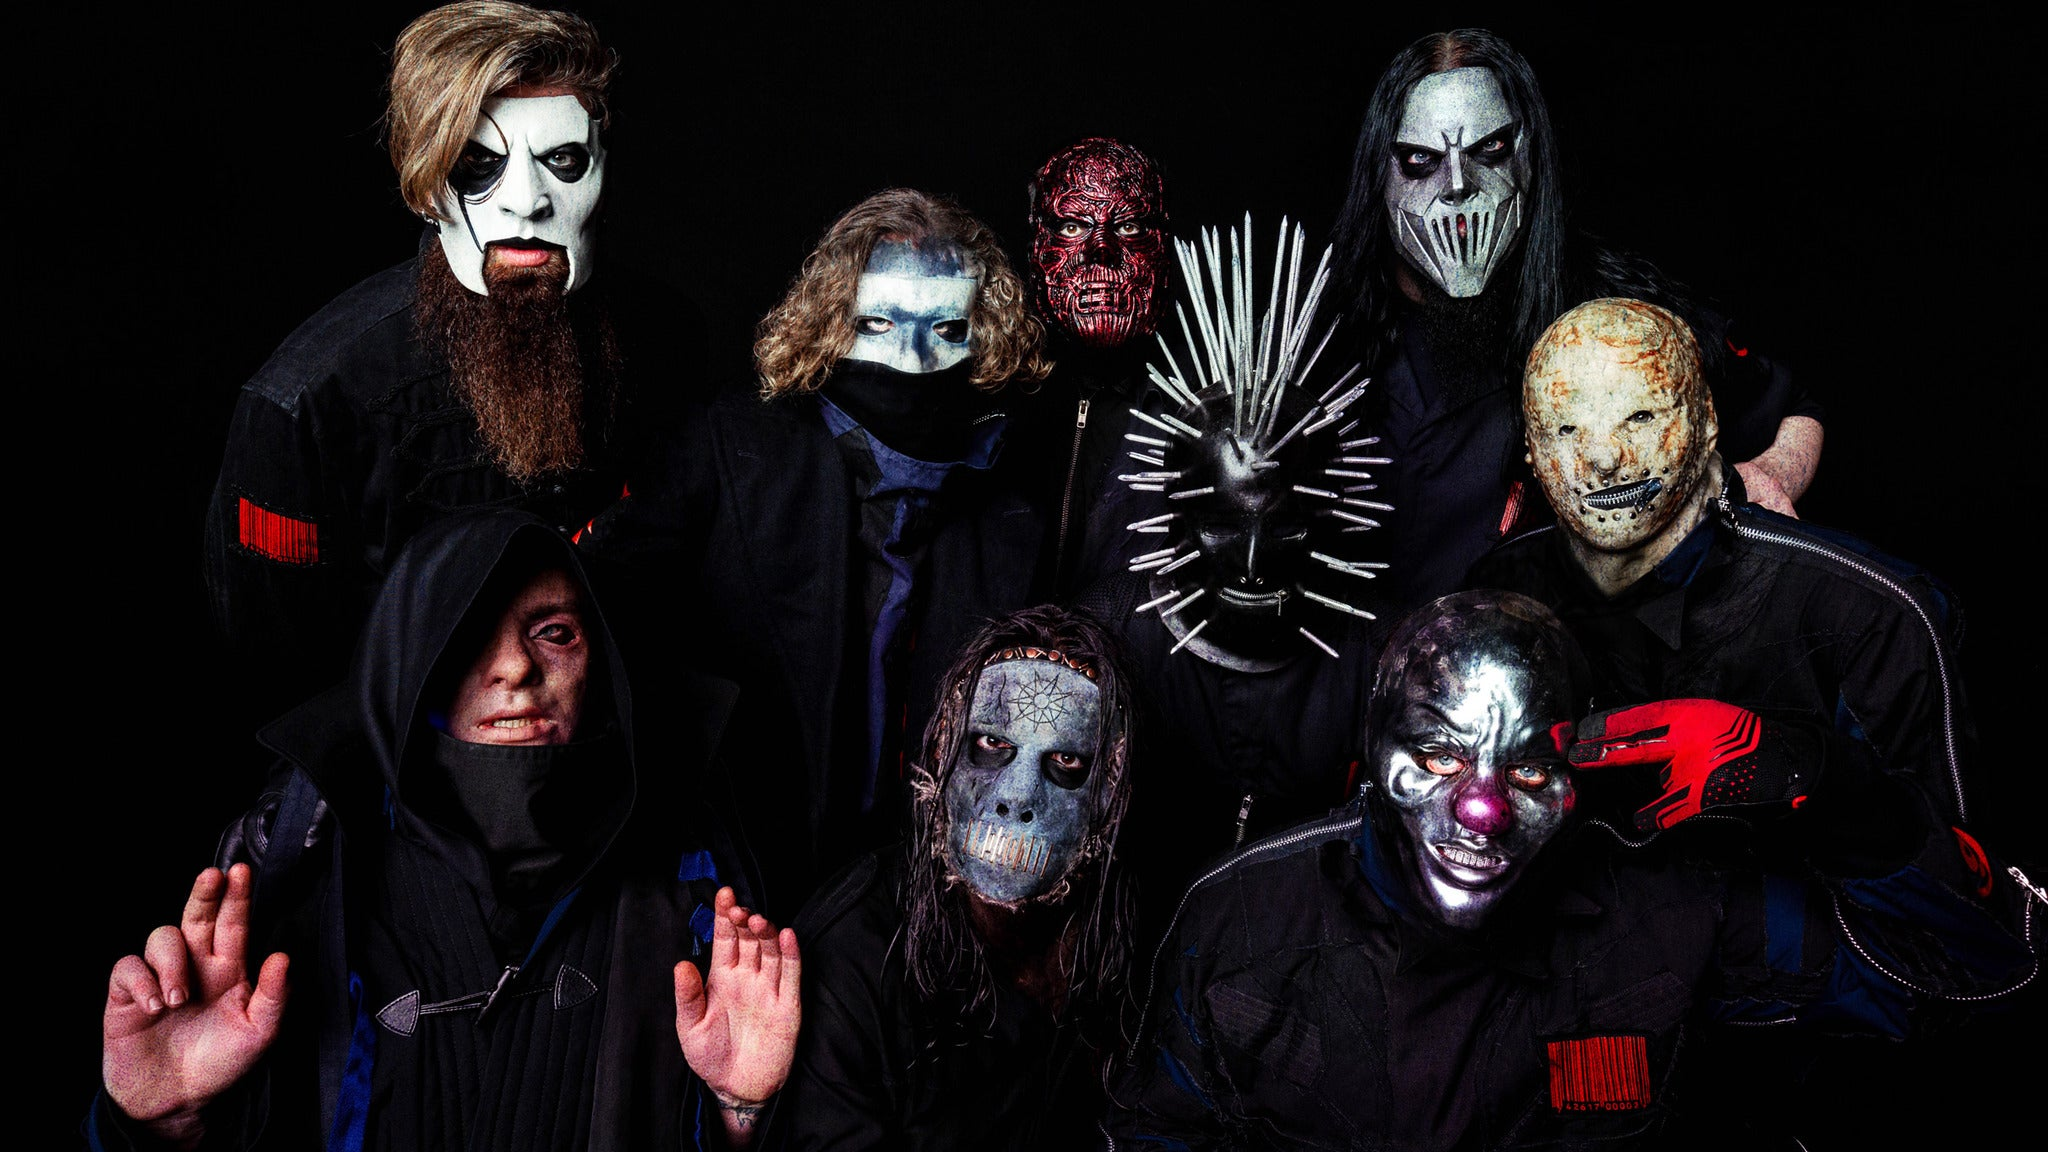 KLOS Whiplash Presents Knotfest Roadshow featuring Slipknot